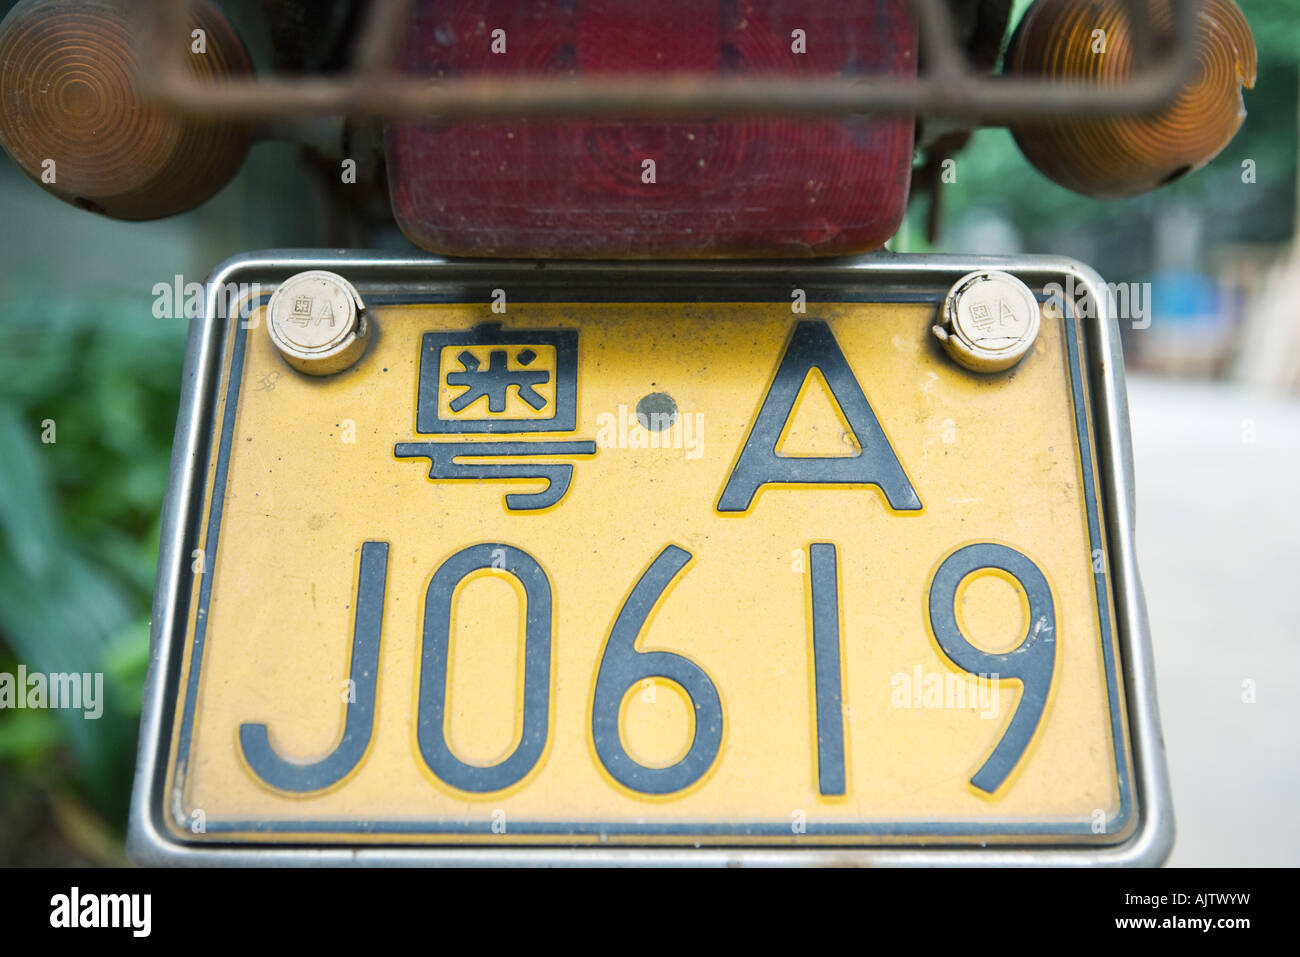 Bicycle license plate with Chinese character, close-up - Stock Image